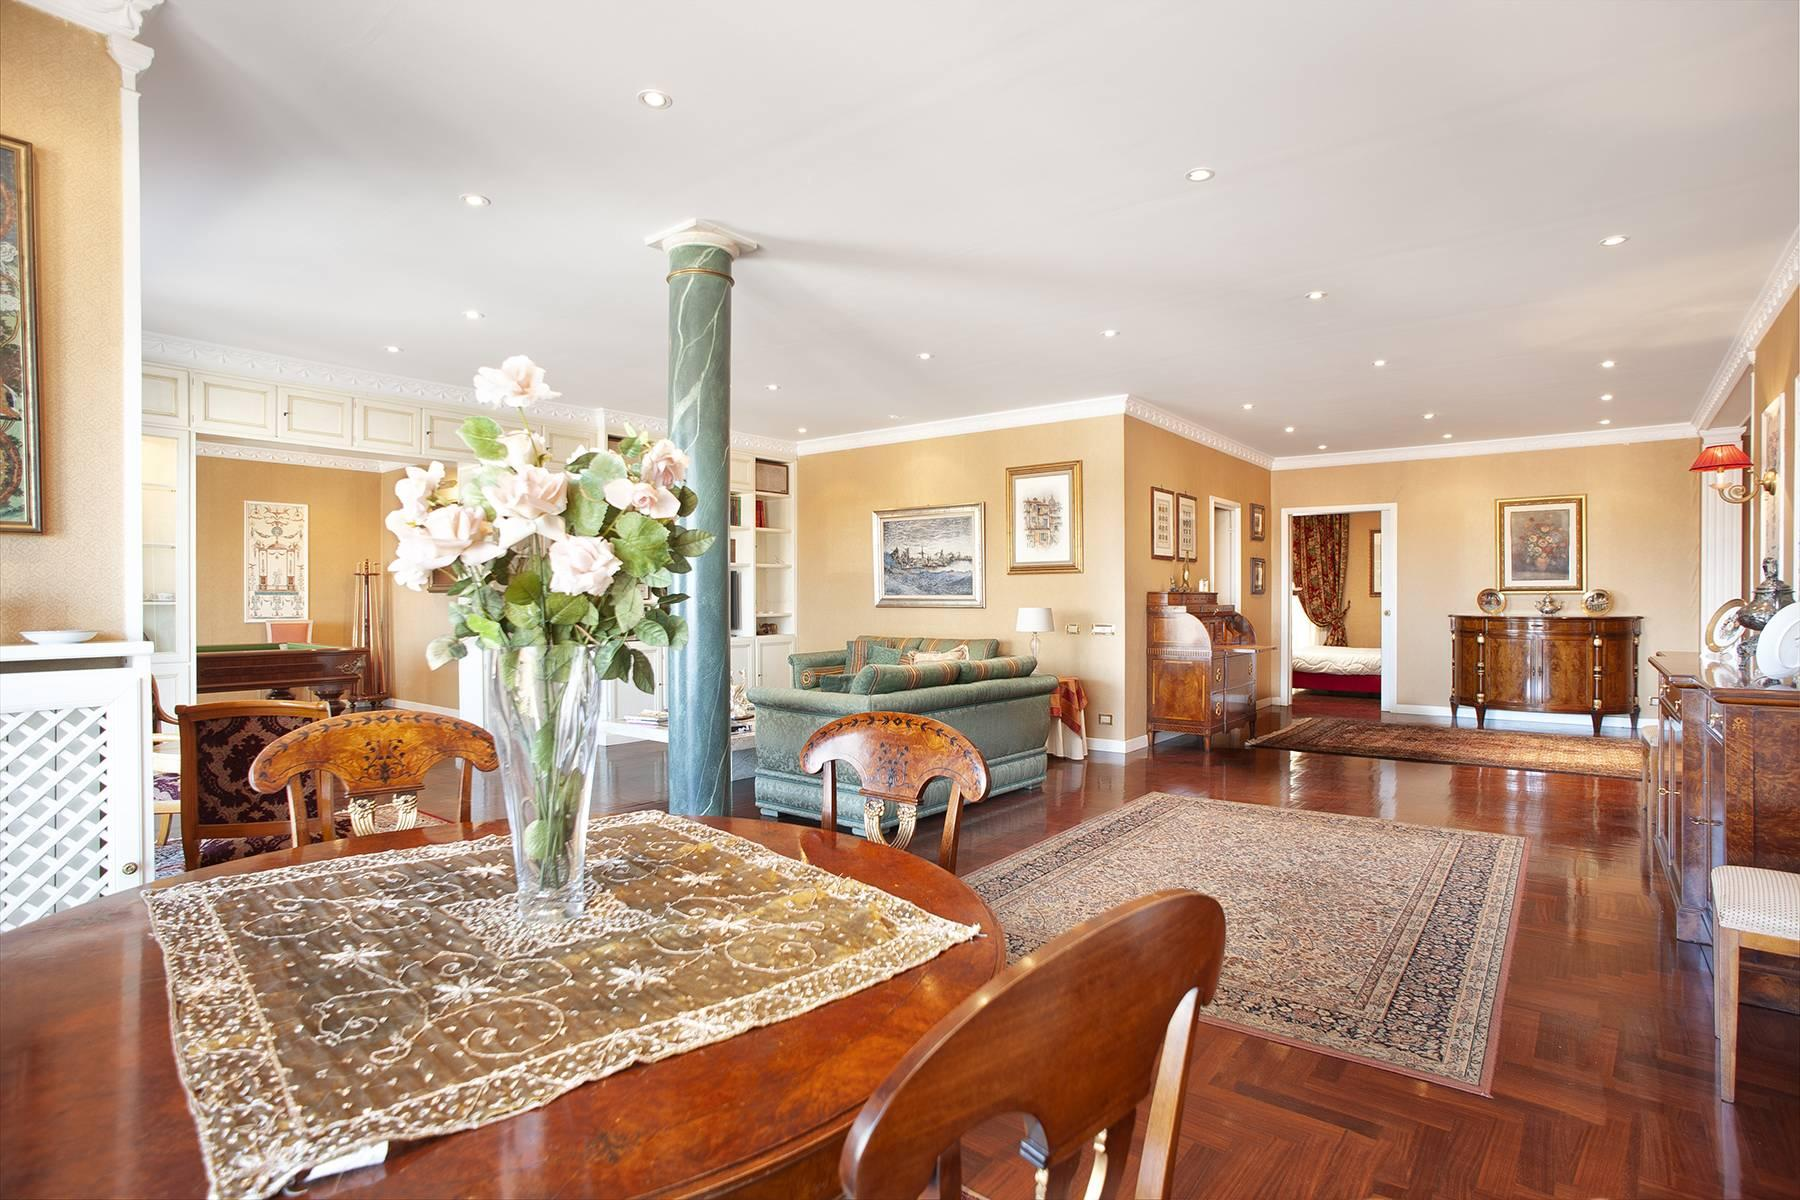 Stunning apartment a stone's throw from St. Peter's Basilica - 6